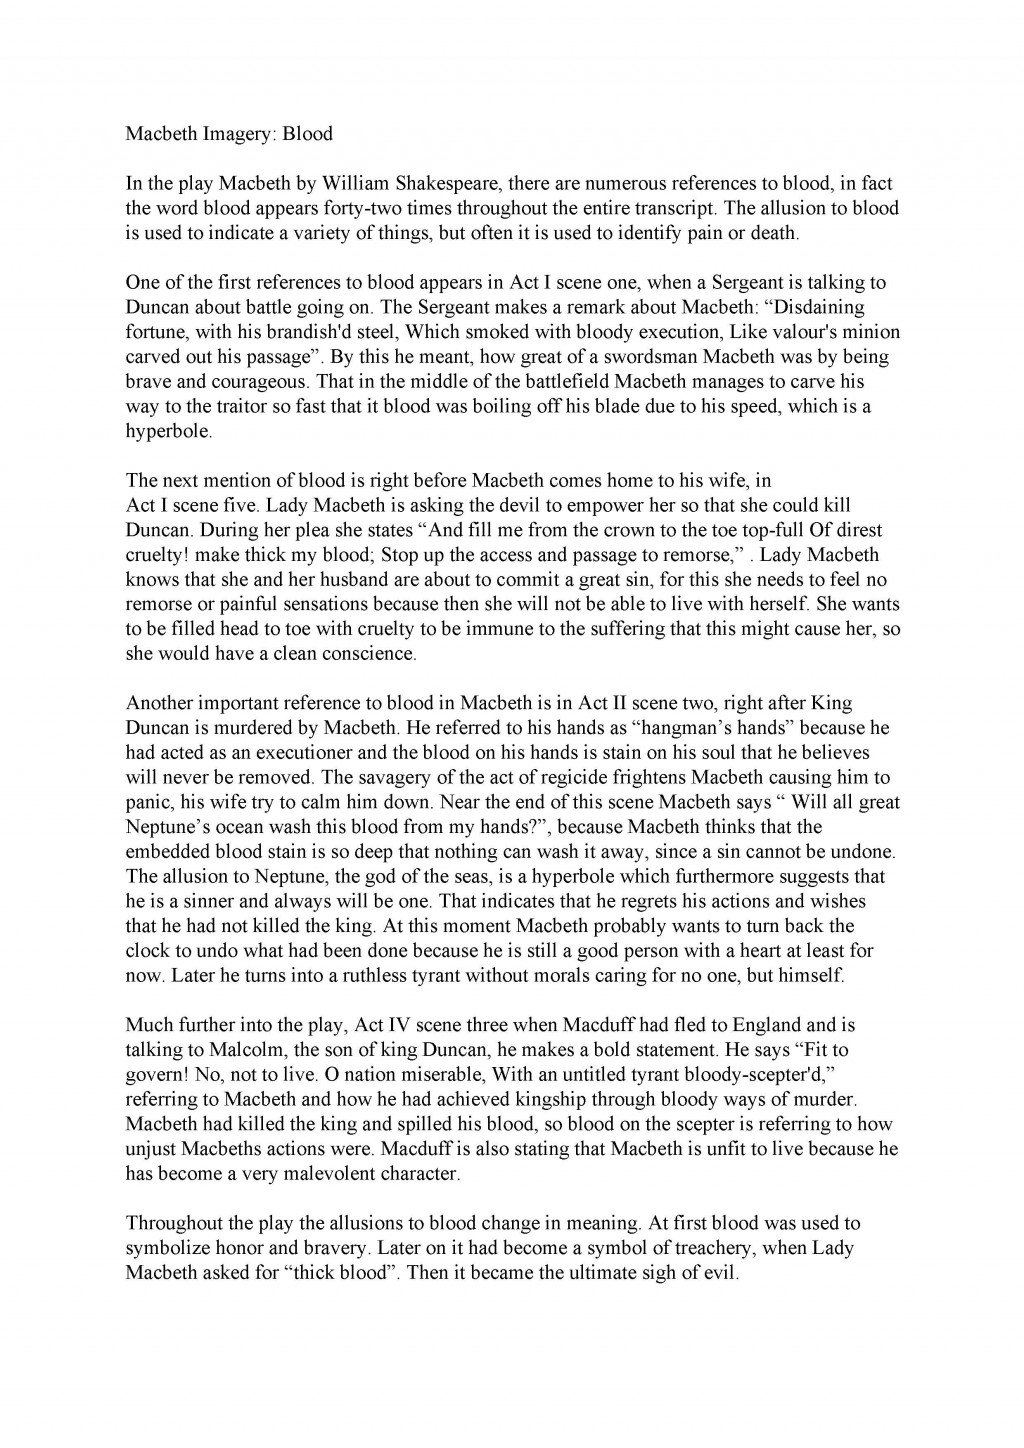 012 Macbeth Essay Sample Free Write Archaicawful Writing Prompts Examples Website To Essays Large